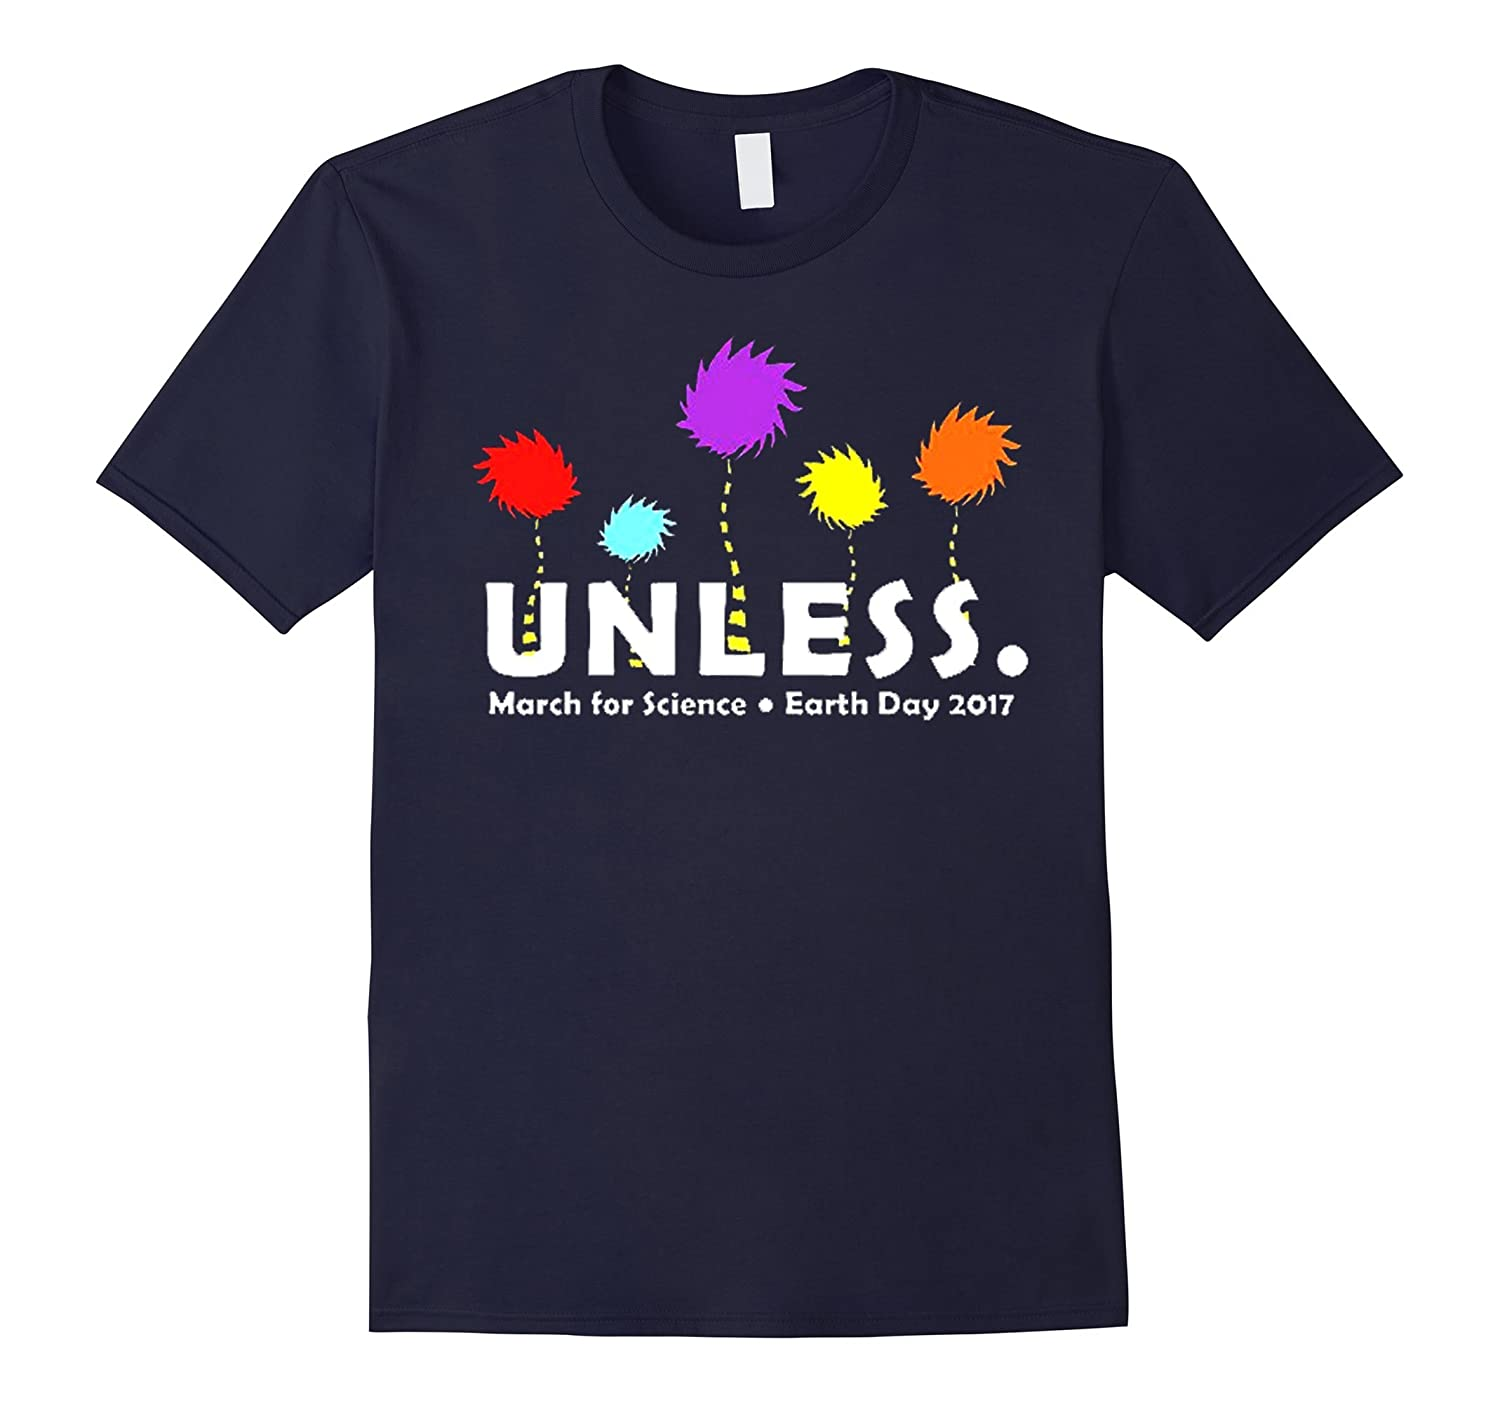 Cool Unless March for Science Earth Day 2017 T-Shirt-Vaci